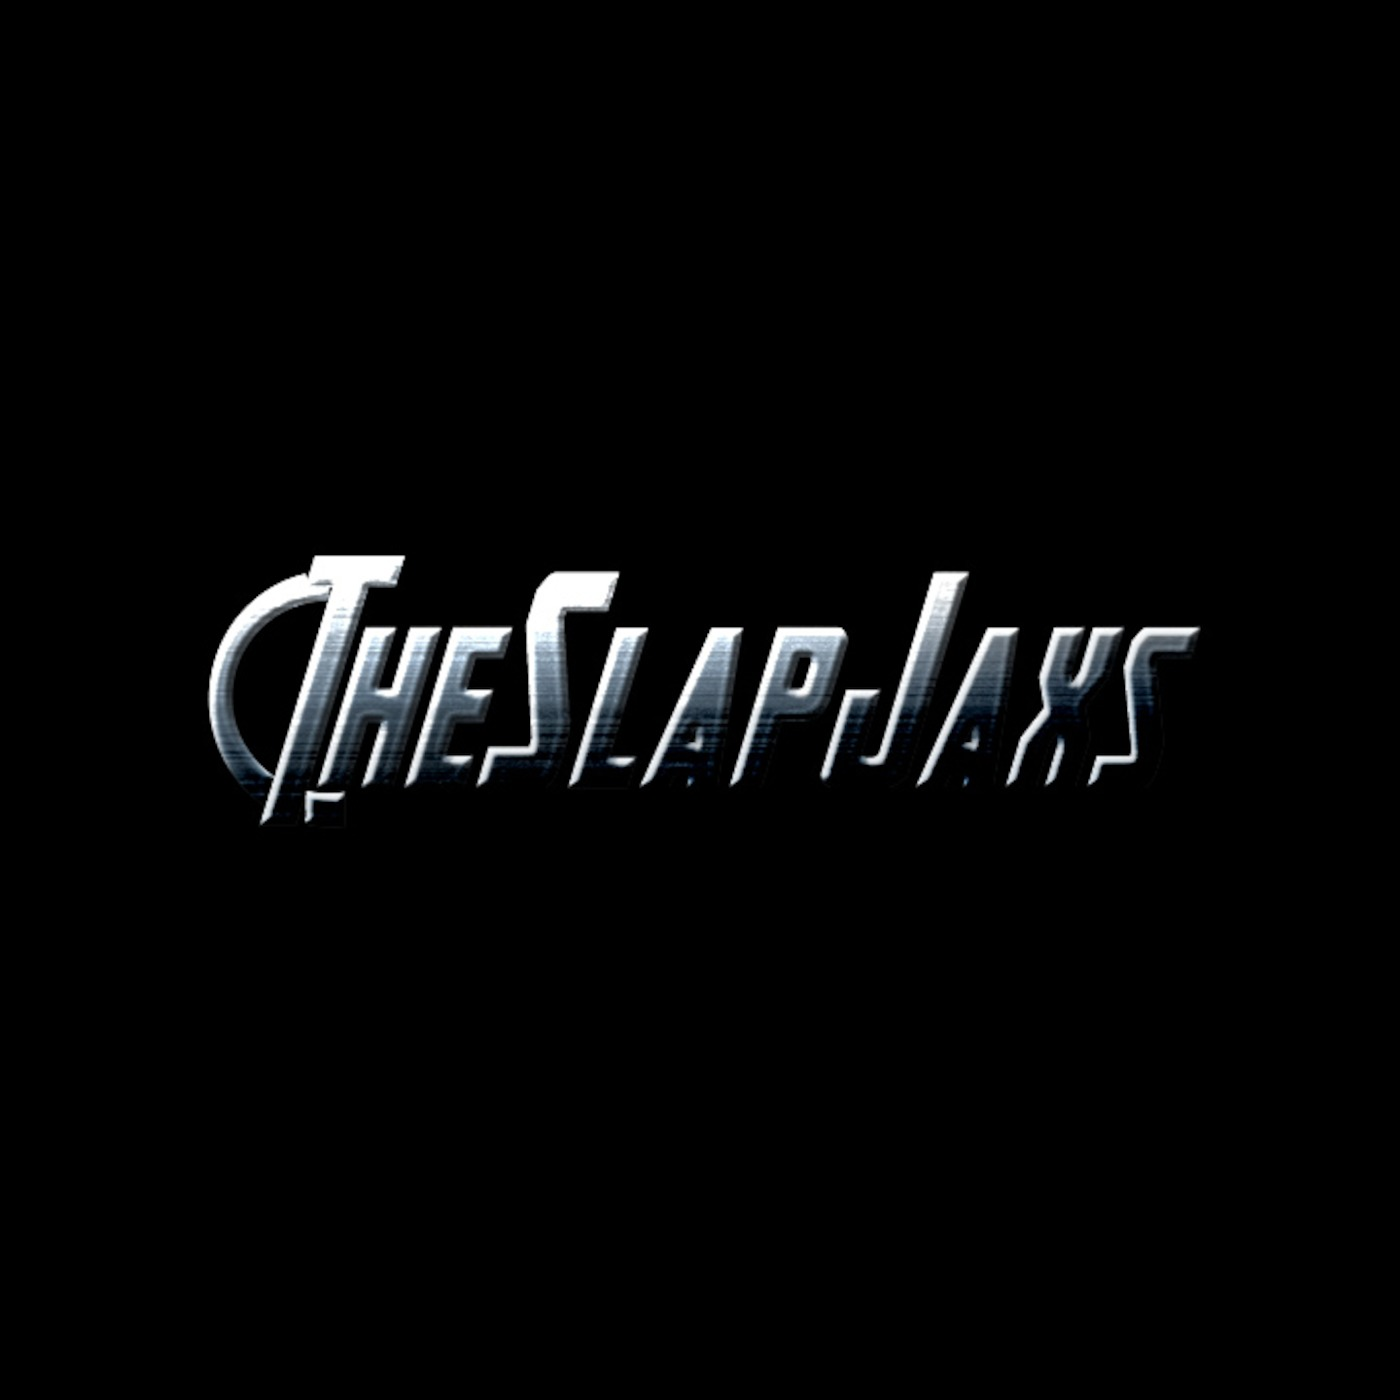 TheSlapJaxs' Podcast